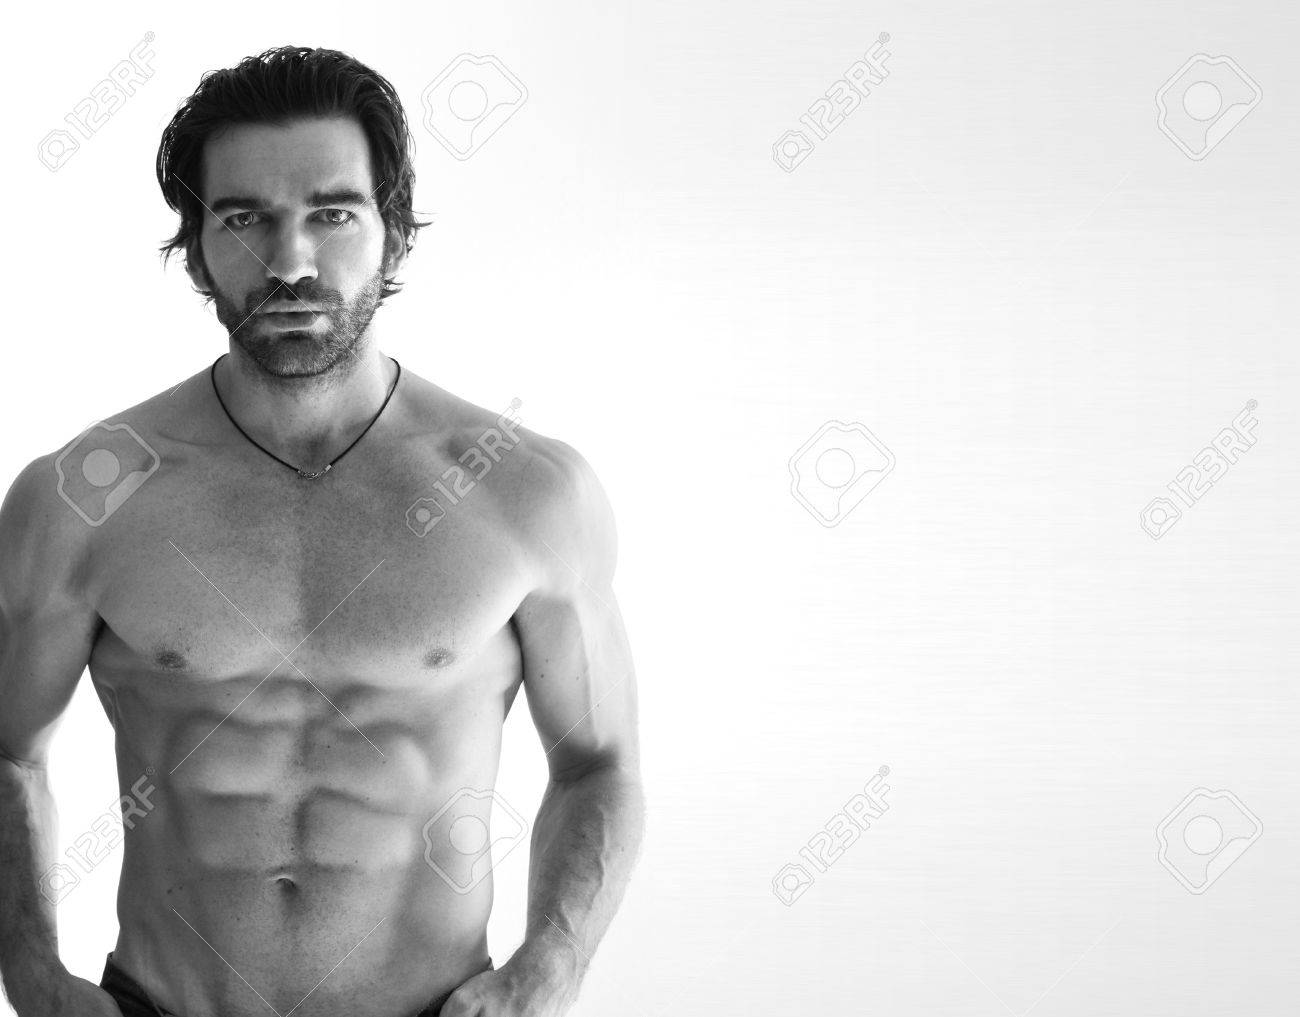 Sexy shirtless muscular man against white background Stock Photo - 8458588